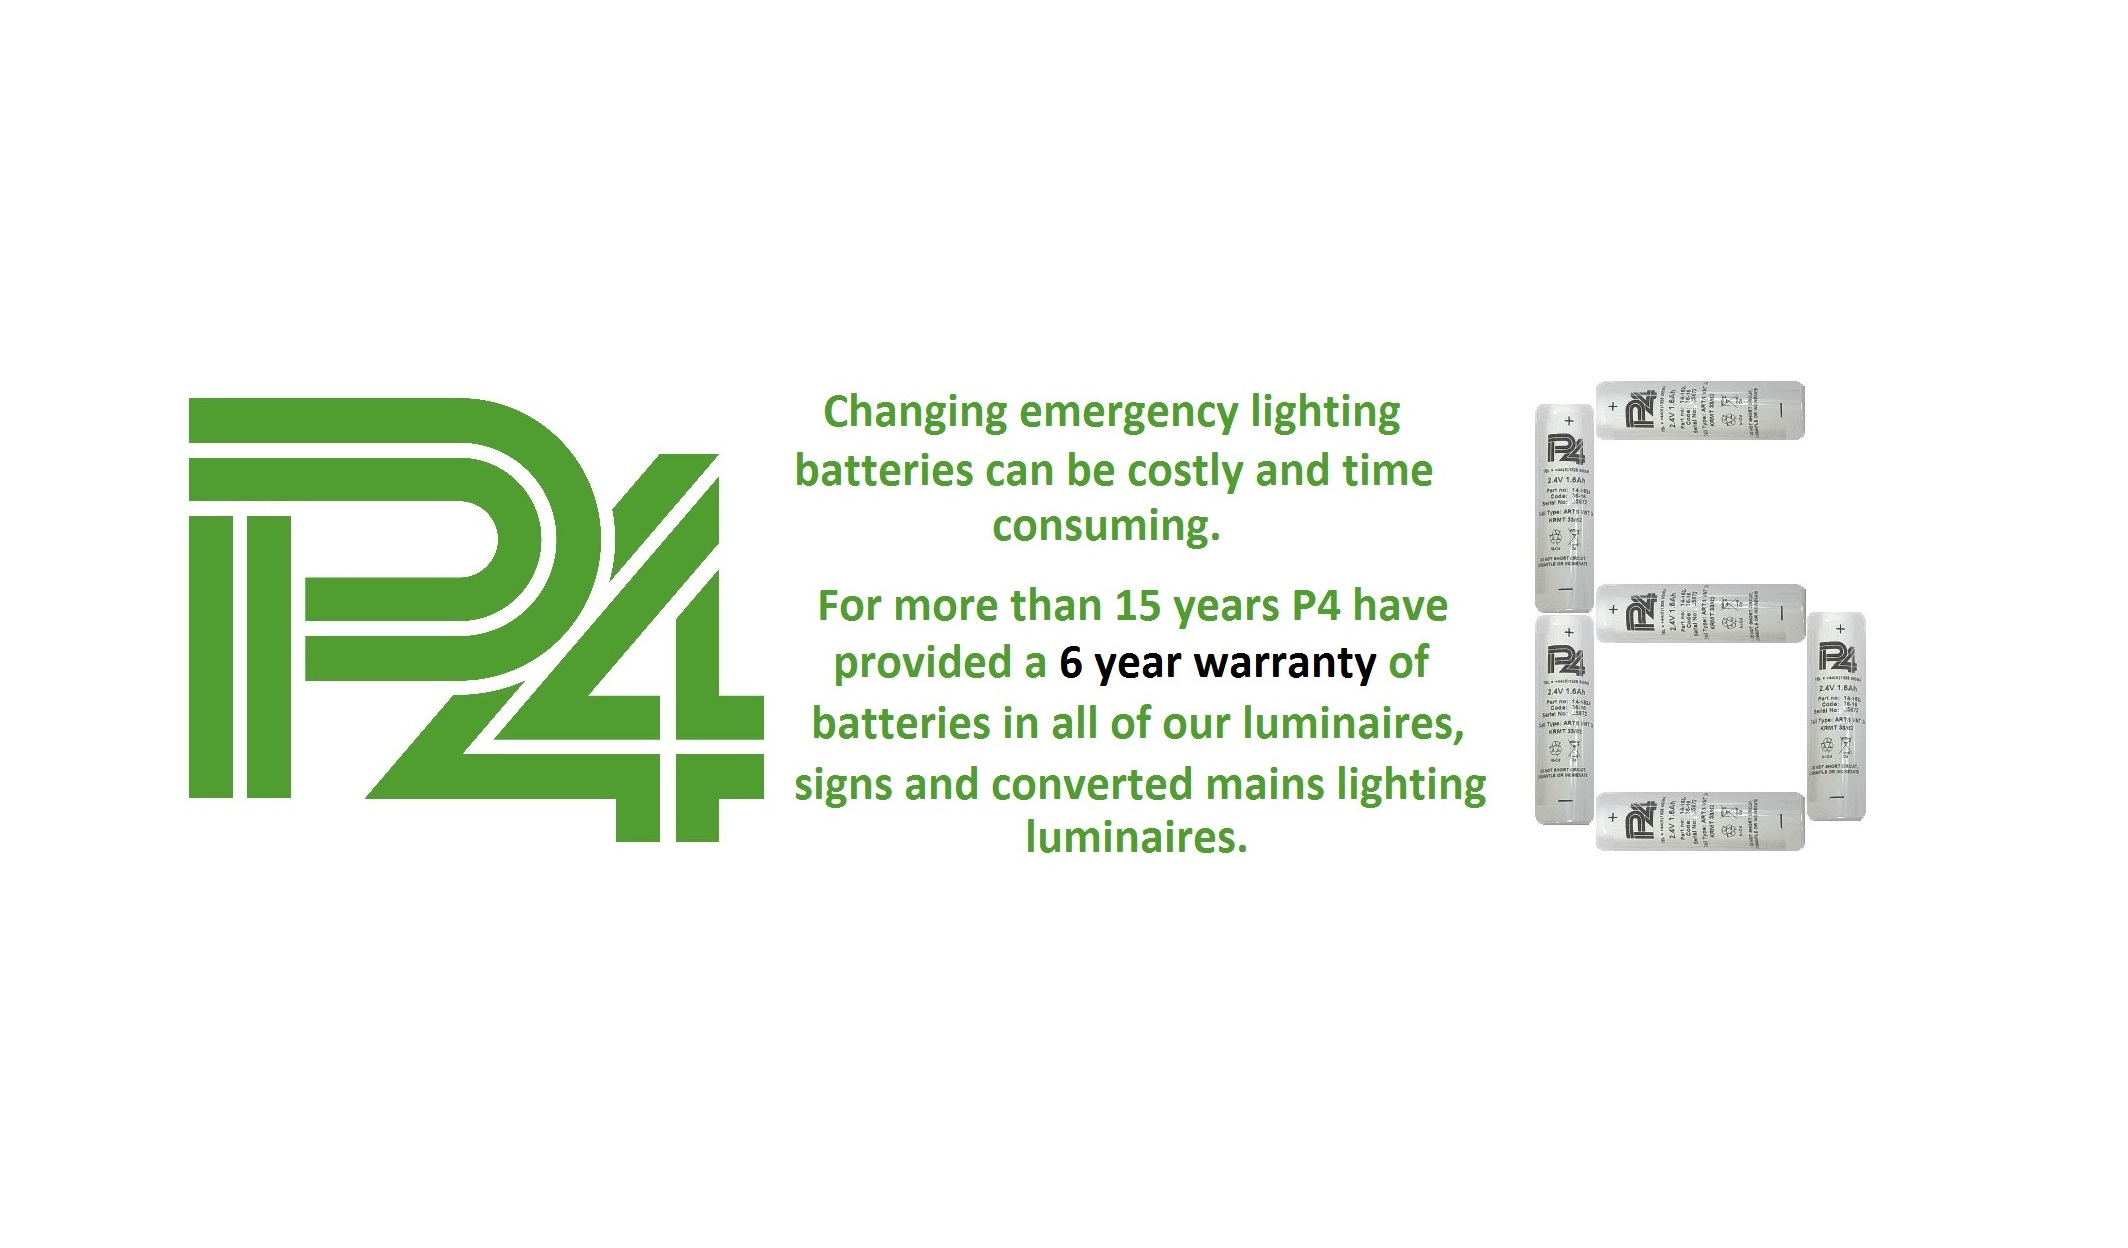 P4 6 year warranty on emergency lighting batteries banner